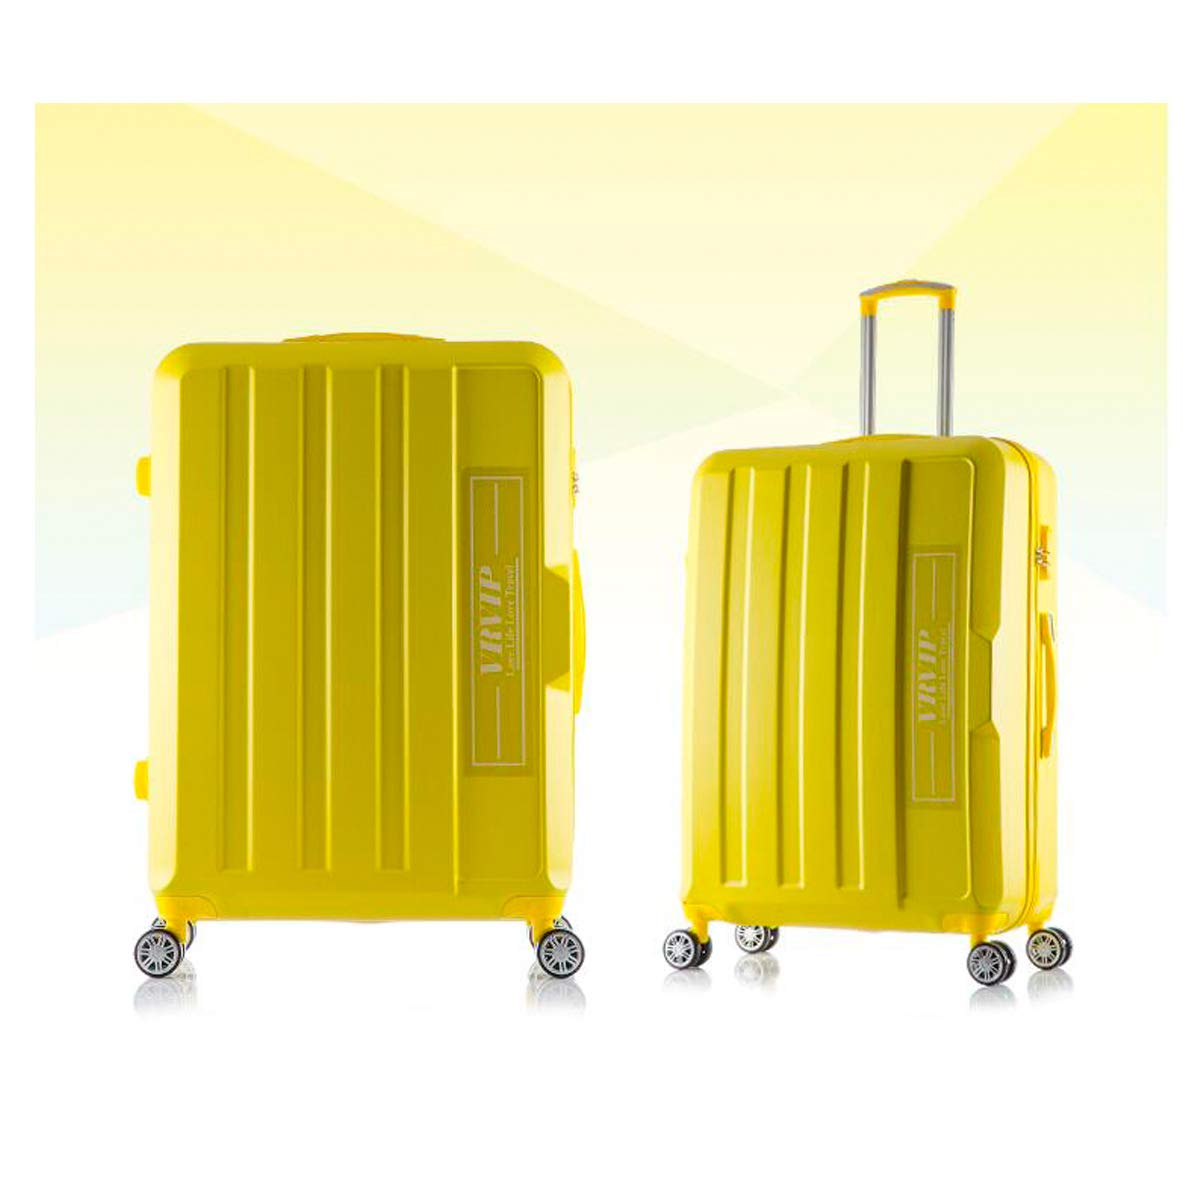 Carrying Luggage Color : Yellow, Size : 26 Simple Huijunwenti Hard Rotating Luggage Best Gift Black The Latest Style Travel Organizer 22 Inches Trolley Case